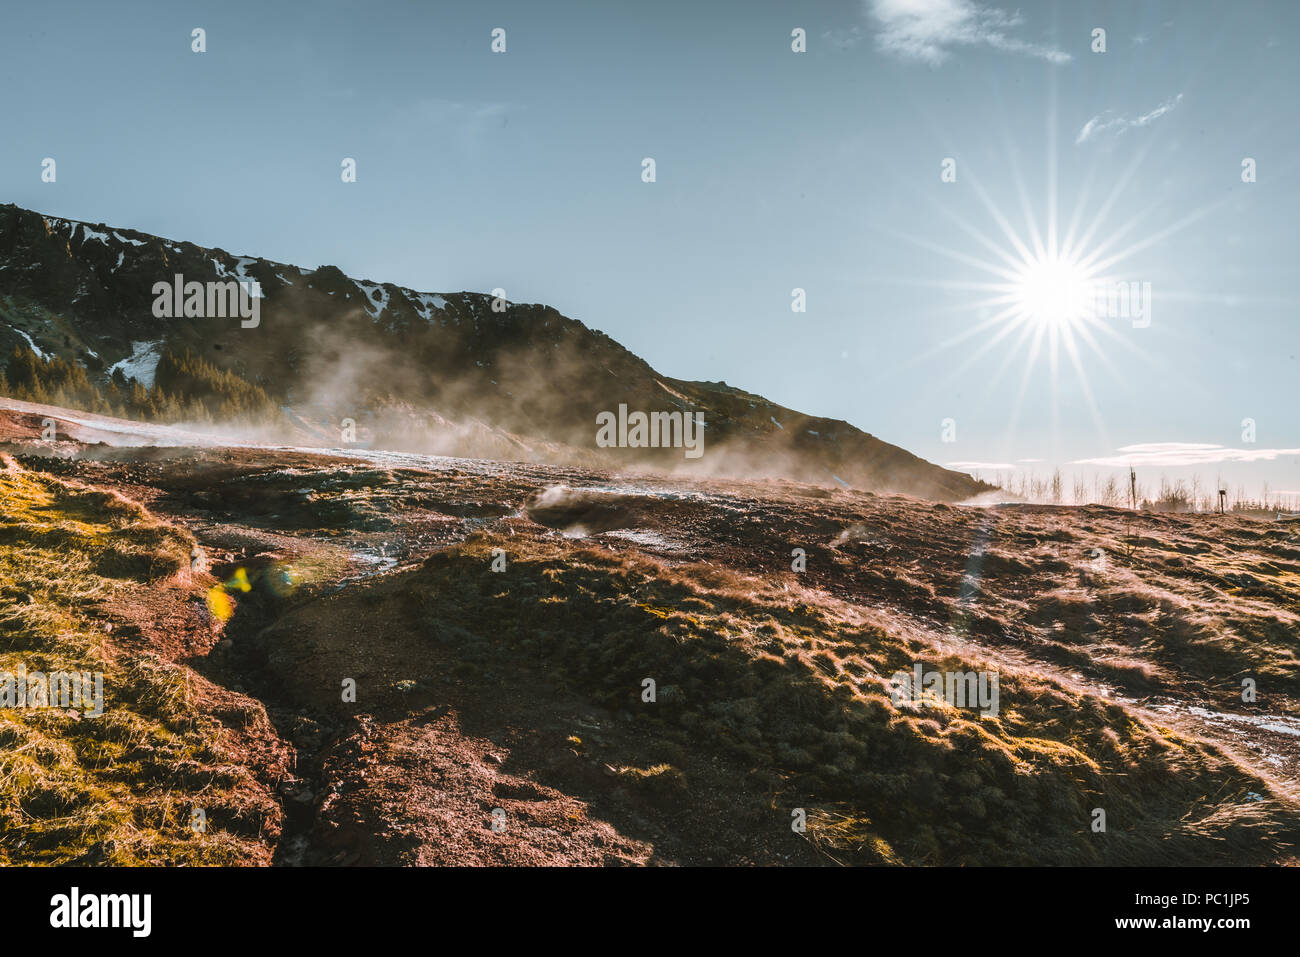 Boiling water and mud in the geothermal area Reykjadalur valley in South Iceland - Stock Image